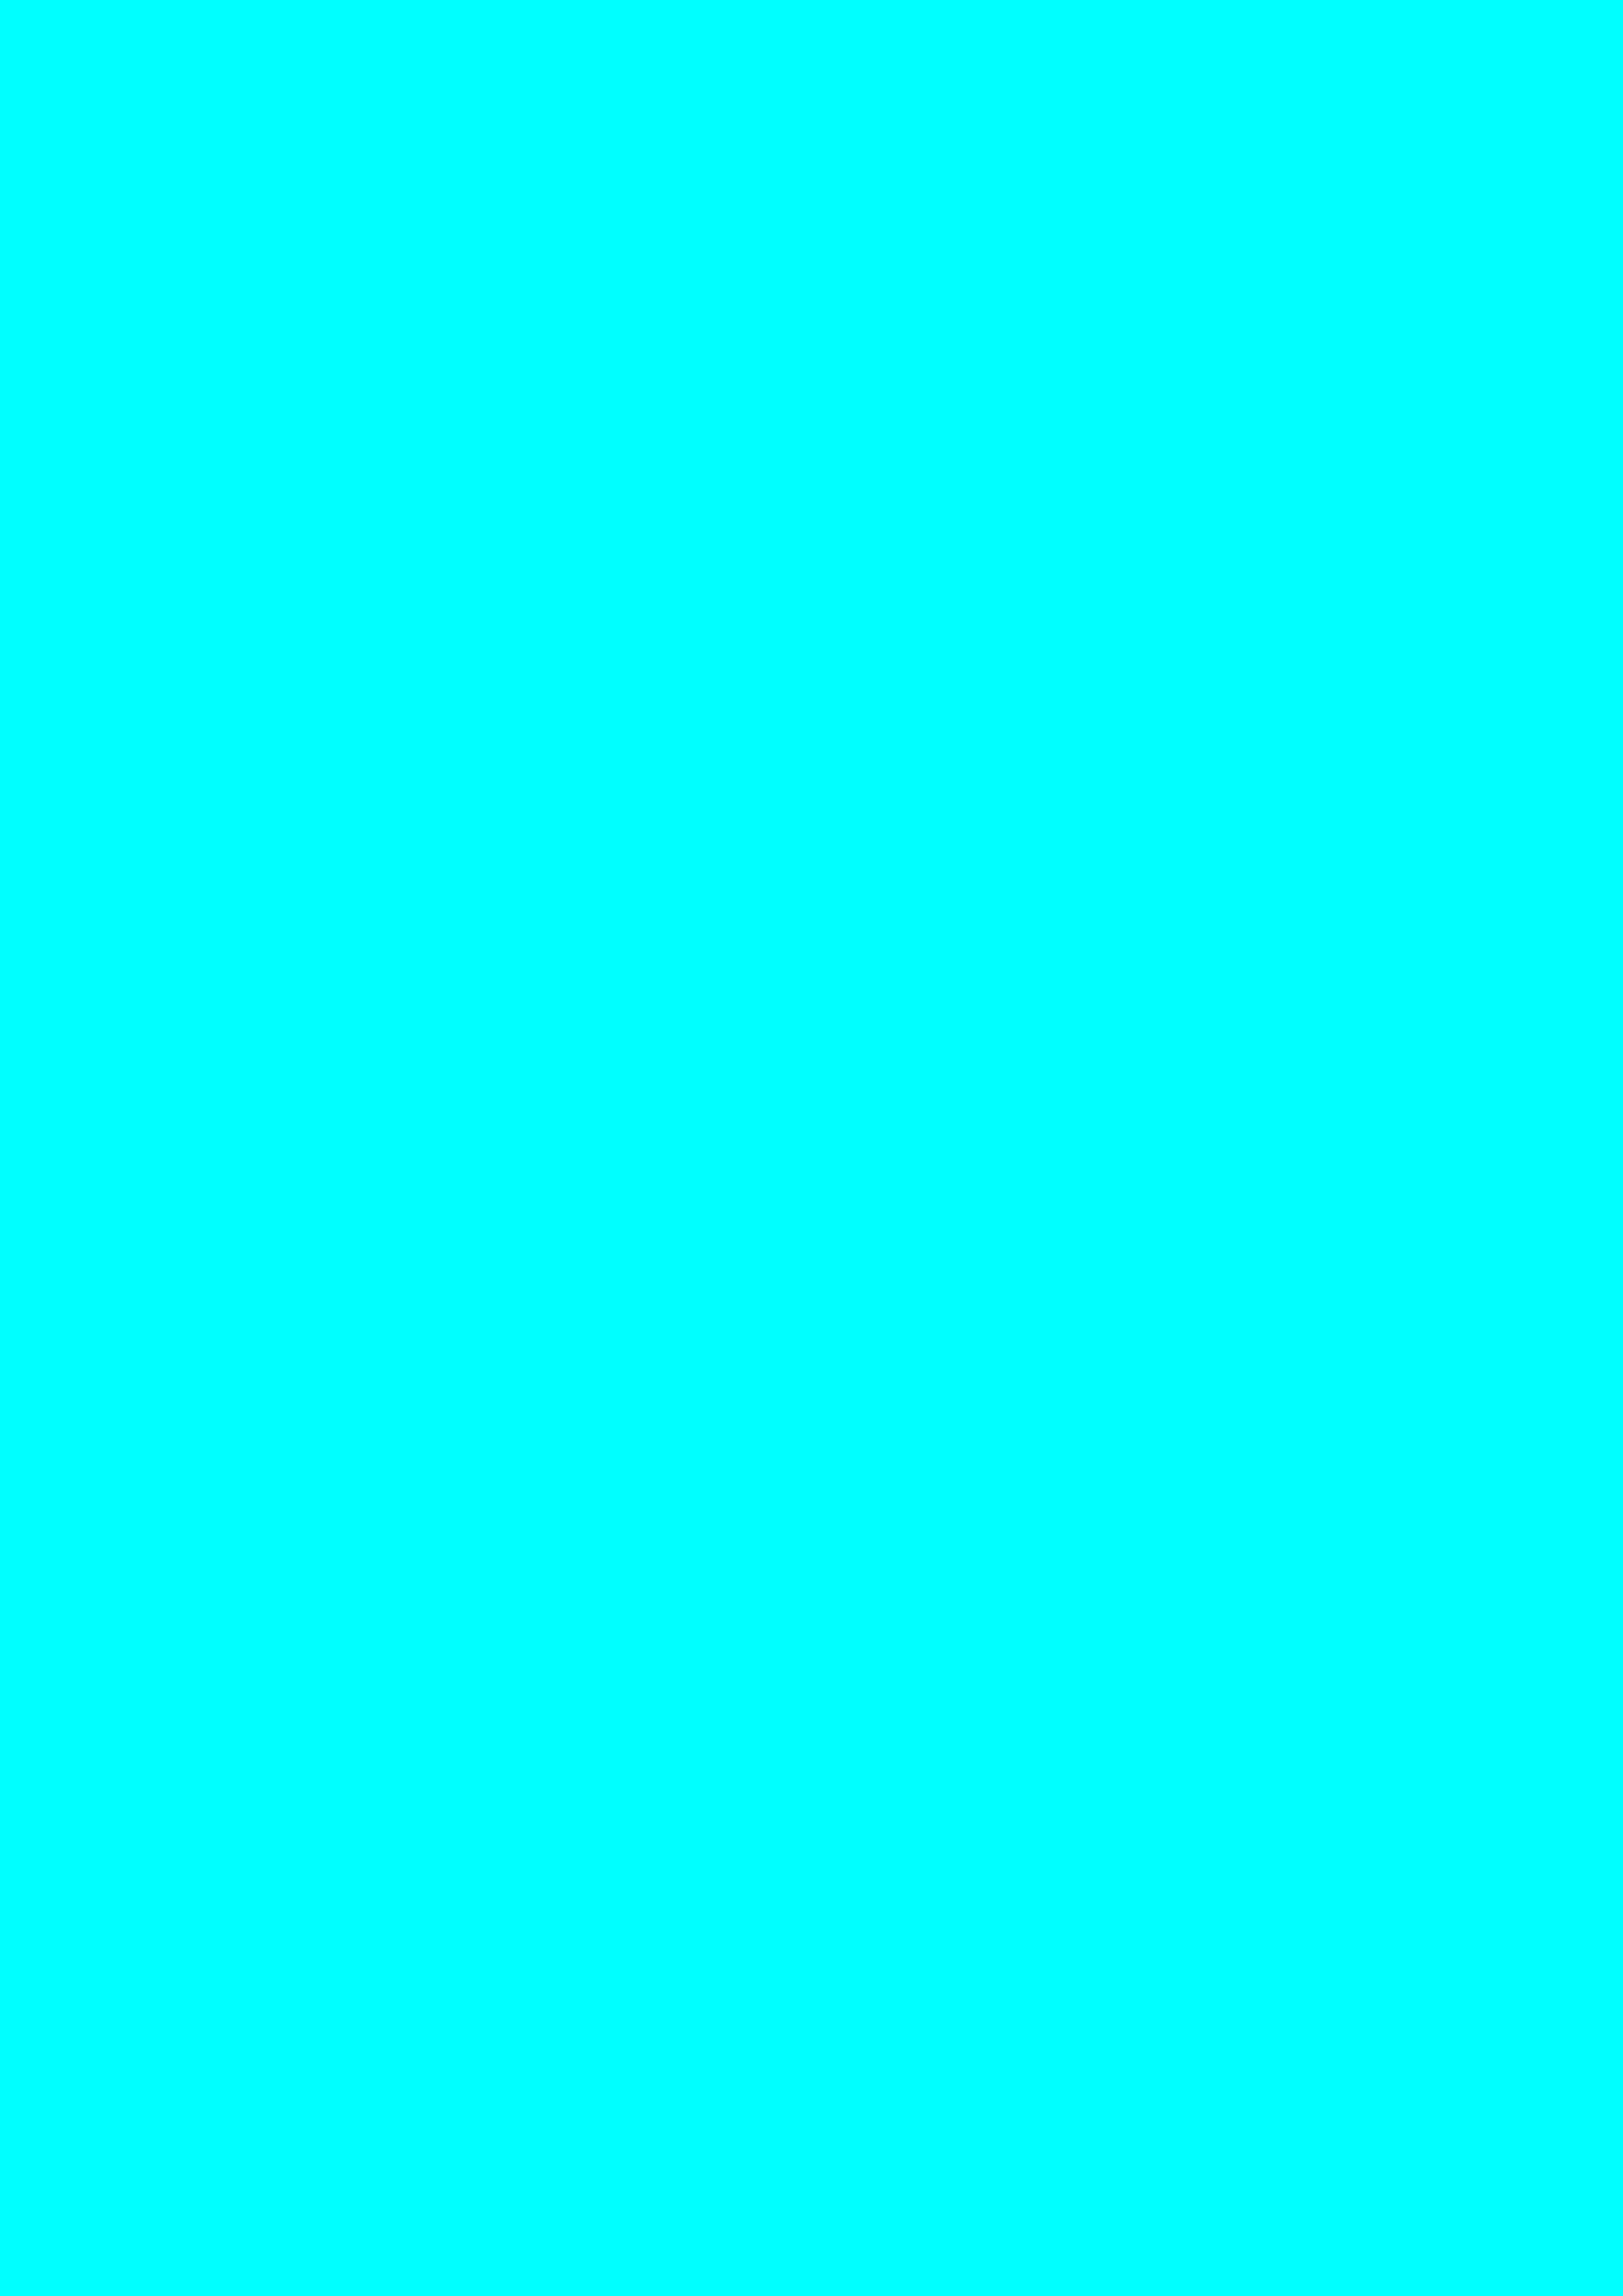 2480x3508 Electric Cyan Solid Color Background